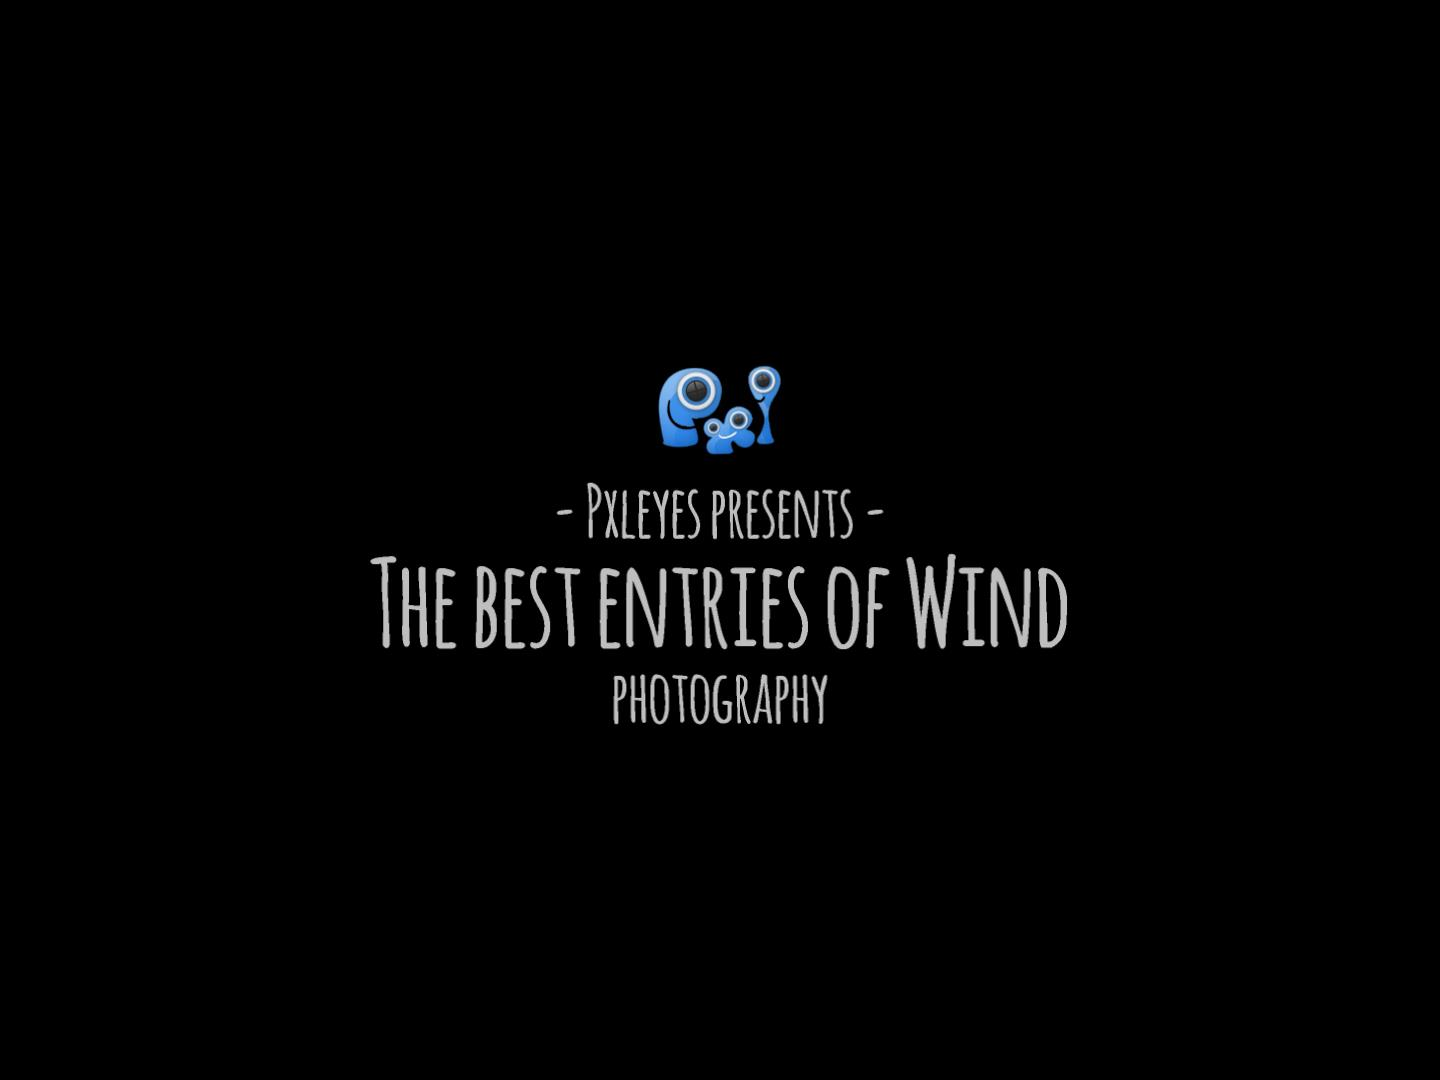 The best entries by Wind